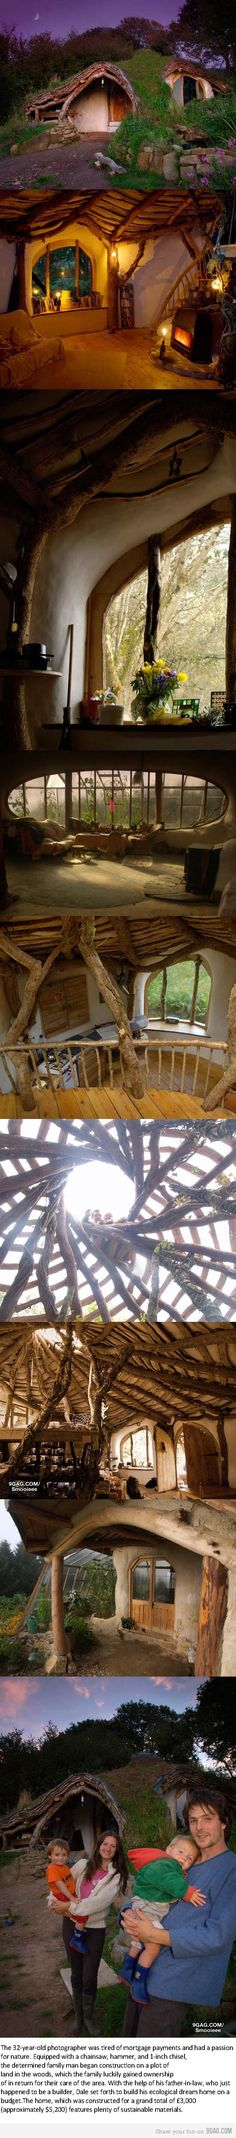 ✿ڿڰۣ  cool cob hobbit home. I'm even more interested in some of the images just below it-- the massive round window-room. I'm pretty sure the other image with the greenhouse built onto the left side of the front door is the same house. Awesome design lets one take full advantage of the beauty (and humidity, smells, etc.) of their garden!